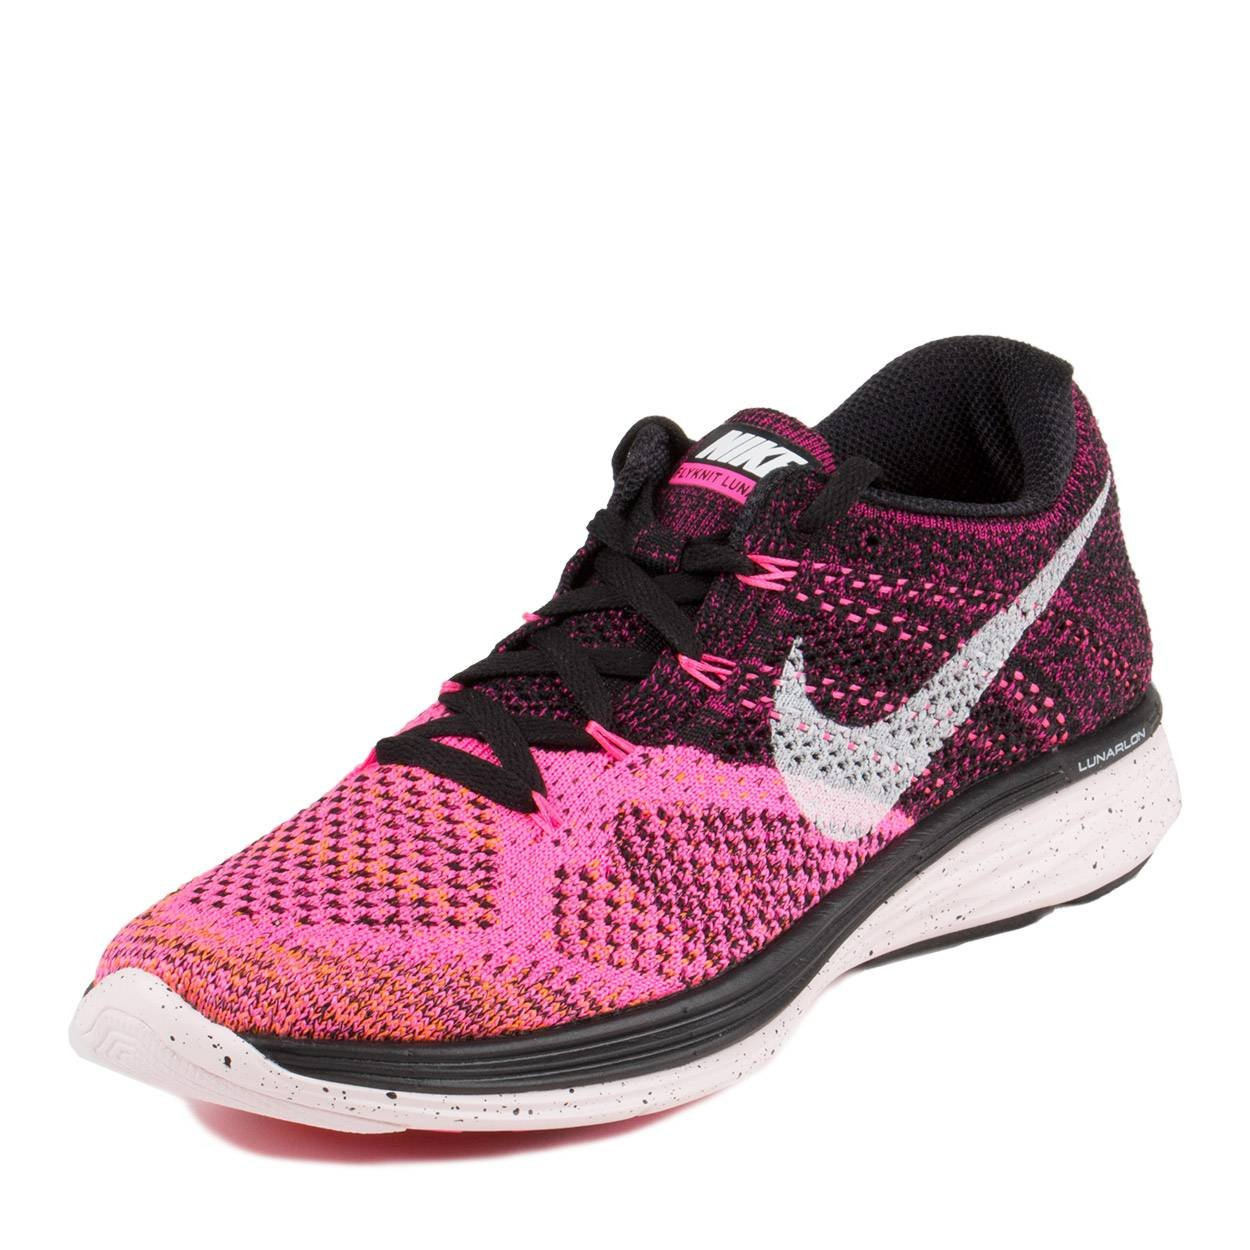 competitive price e2277 3b88b Galleon - Nike Flyknit Lunar 3 Womens Sneakers 698182-002 (10 B(M) US,  Black White Pink Pow TTL Orng)